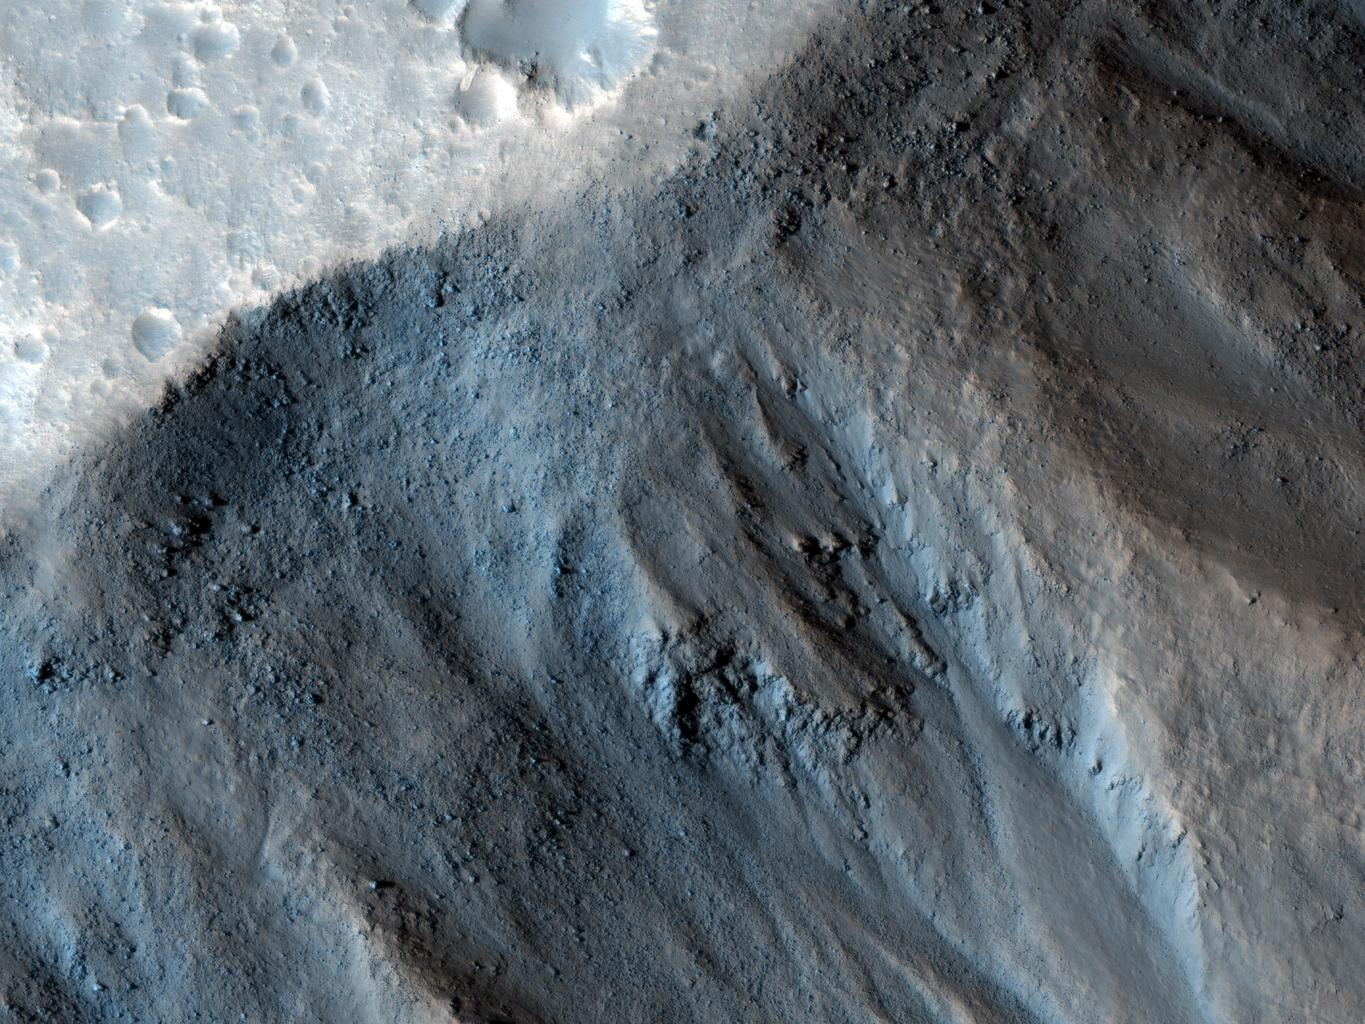 This observation from NASA's Mars Reconnaissance Orbiter shows the very steep side of a plateau, part of the northern limit of the Kasei Valles system, which is one of the largest outflow channel systems on Mars.